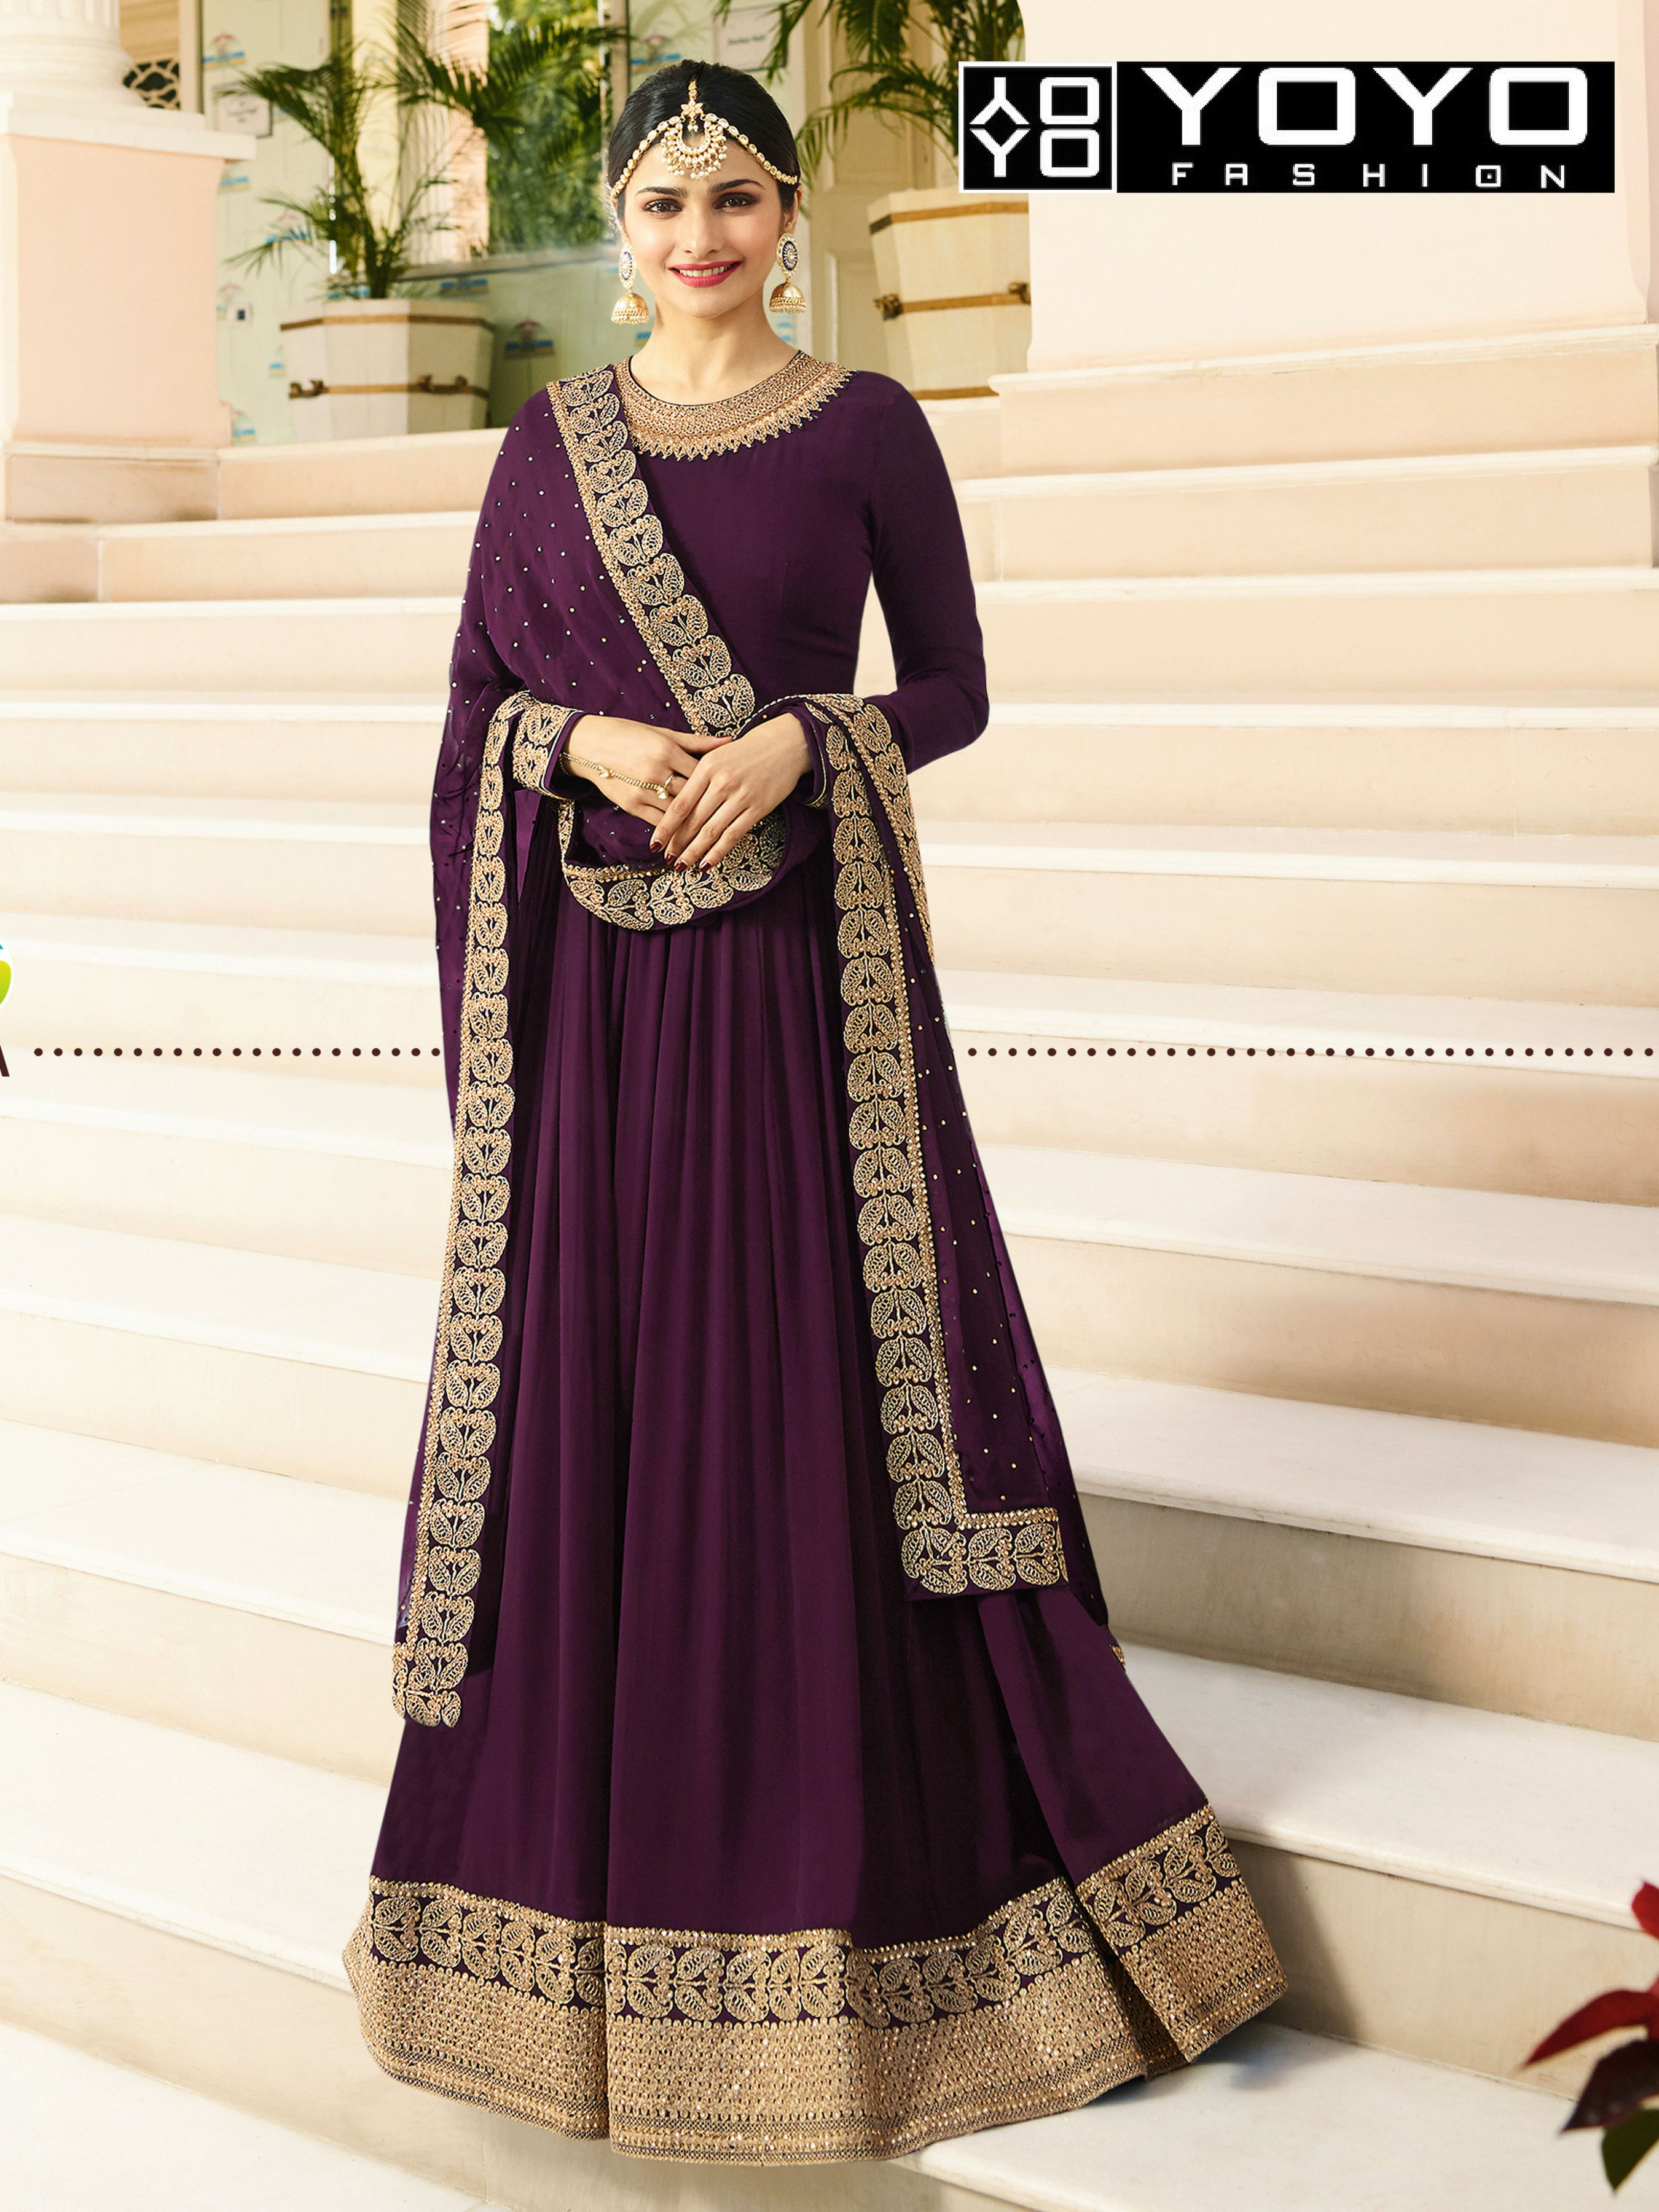 22376ade4f96 YOYO Designer Faux Georgette Purple Embroidered Anarkali Salwar Suit Online  On YOYO Fashion. Call or Whatsapp for more info here  +91 8000588688   SalwarSuit ...